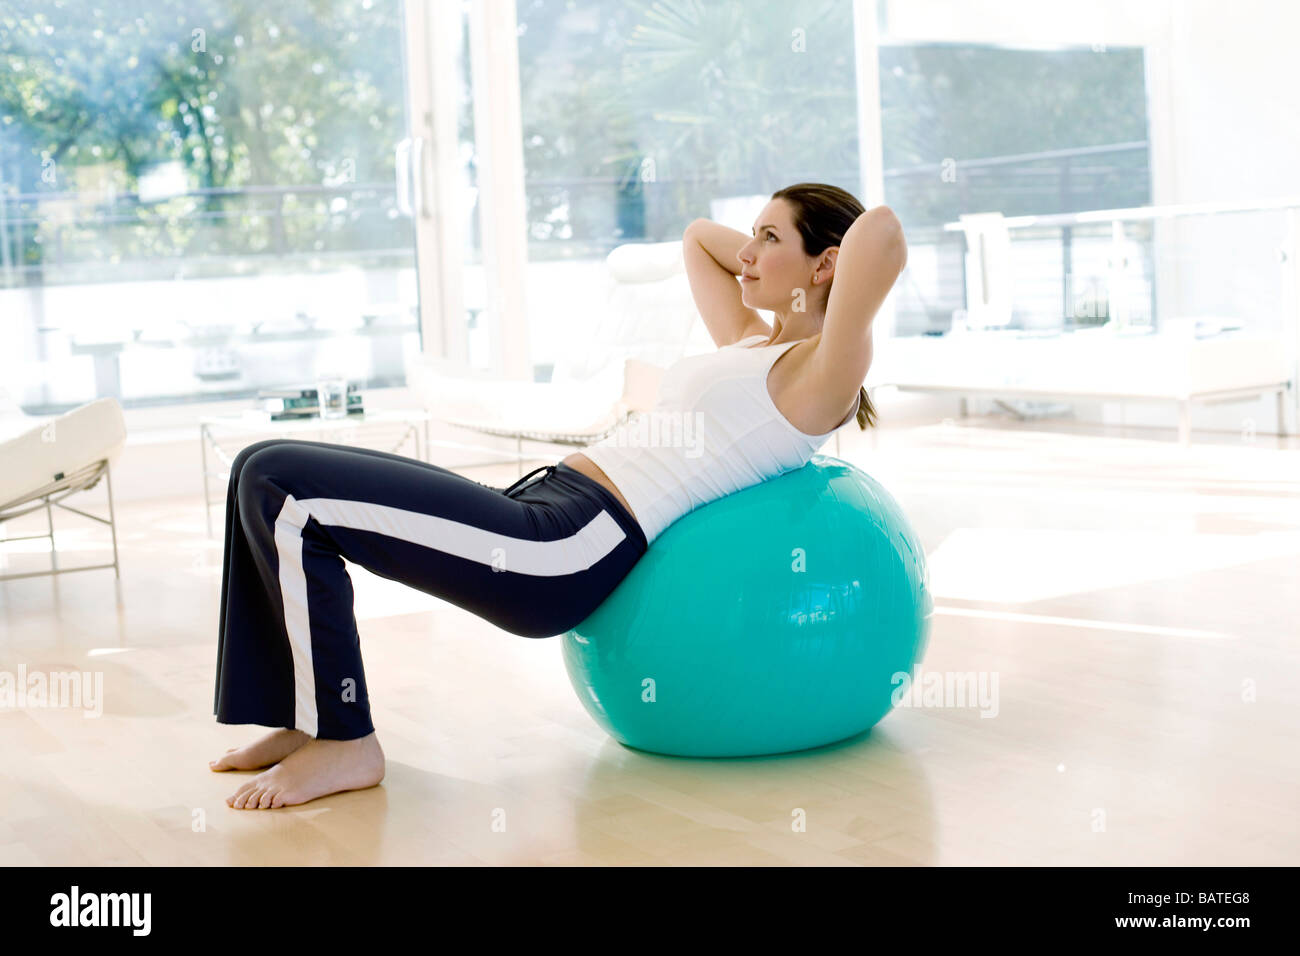 Woman using exercise ball. These balls are used when exercising because their inherent instability. - Stock Image